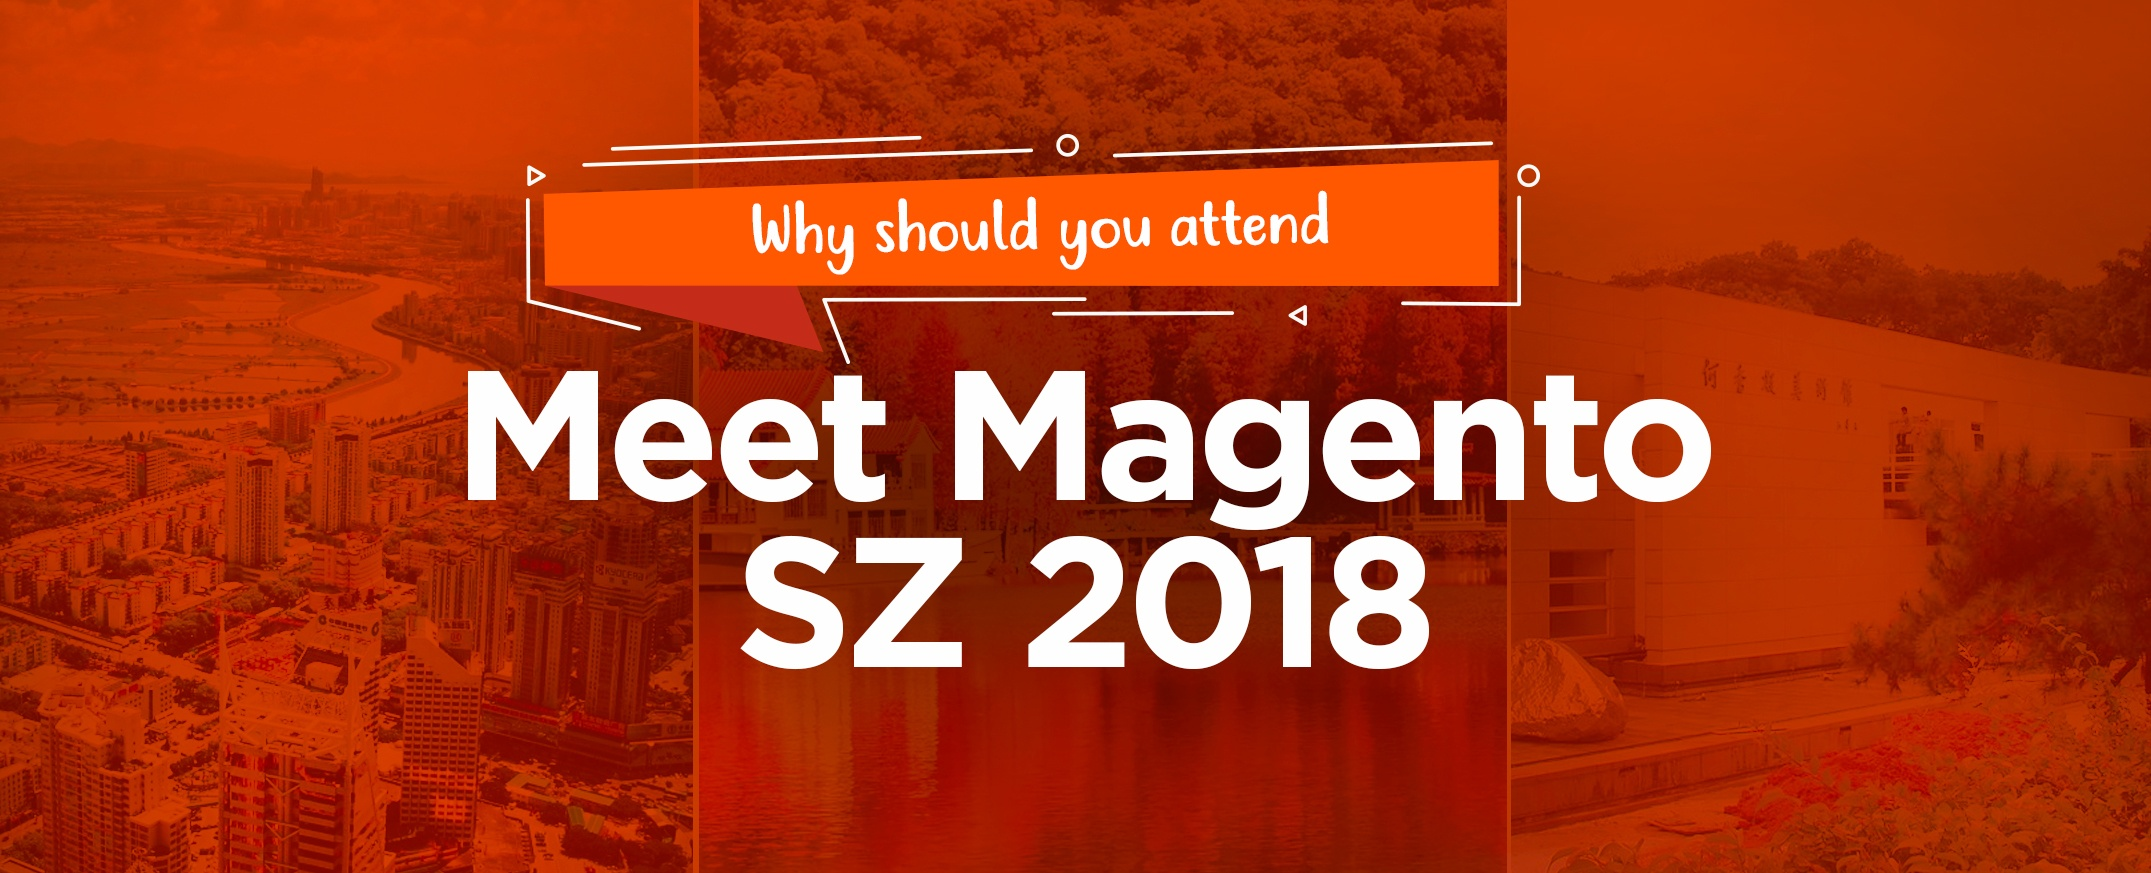 Why-should-you-attend-Meet-Magento-China